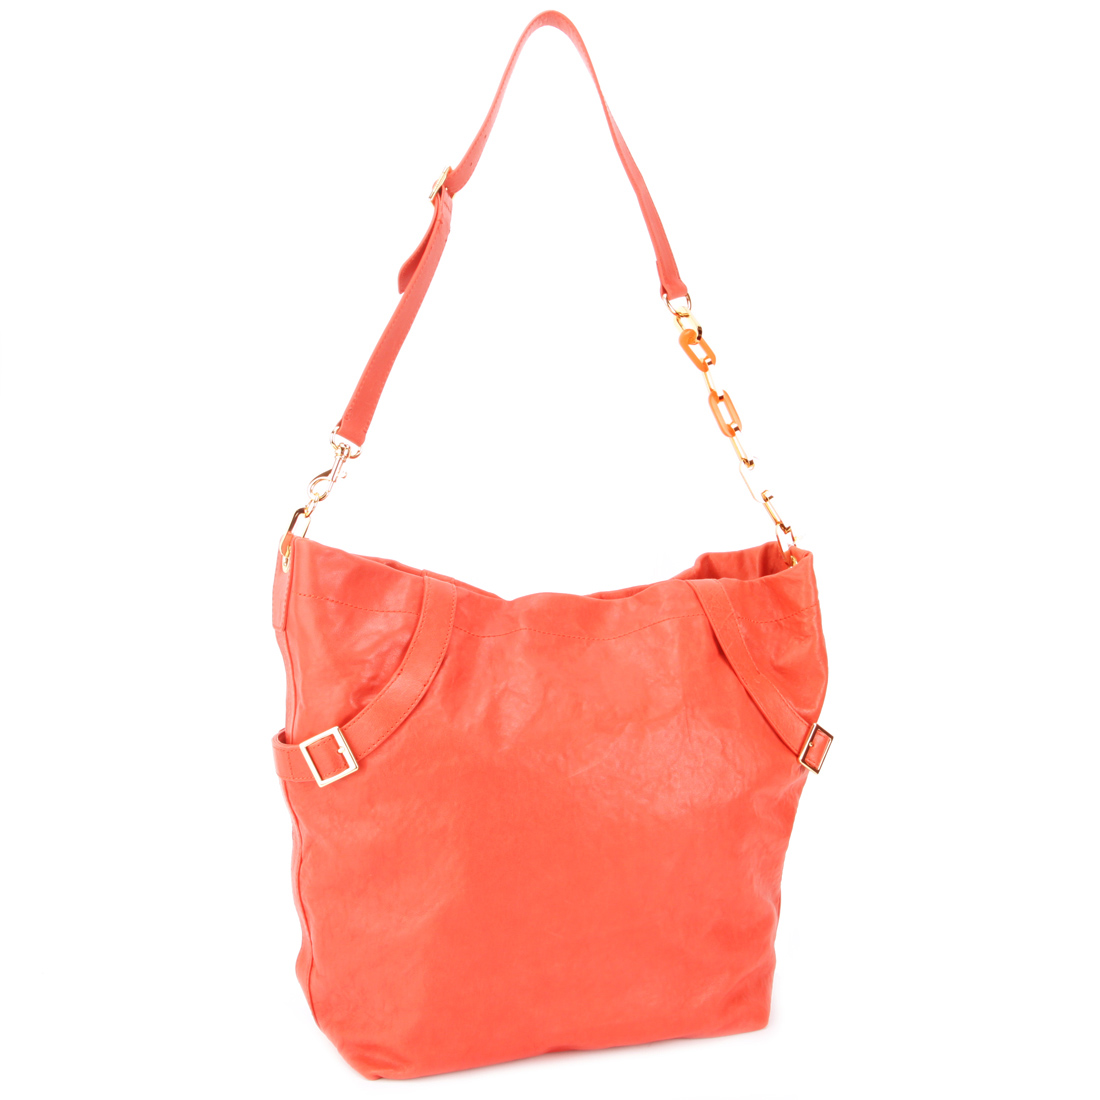 Juicy Couture Large Hobo Handbag-Coral